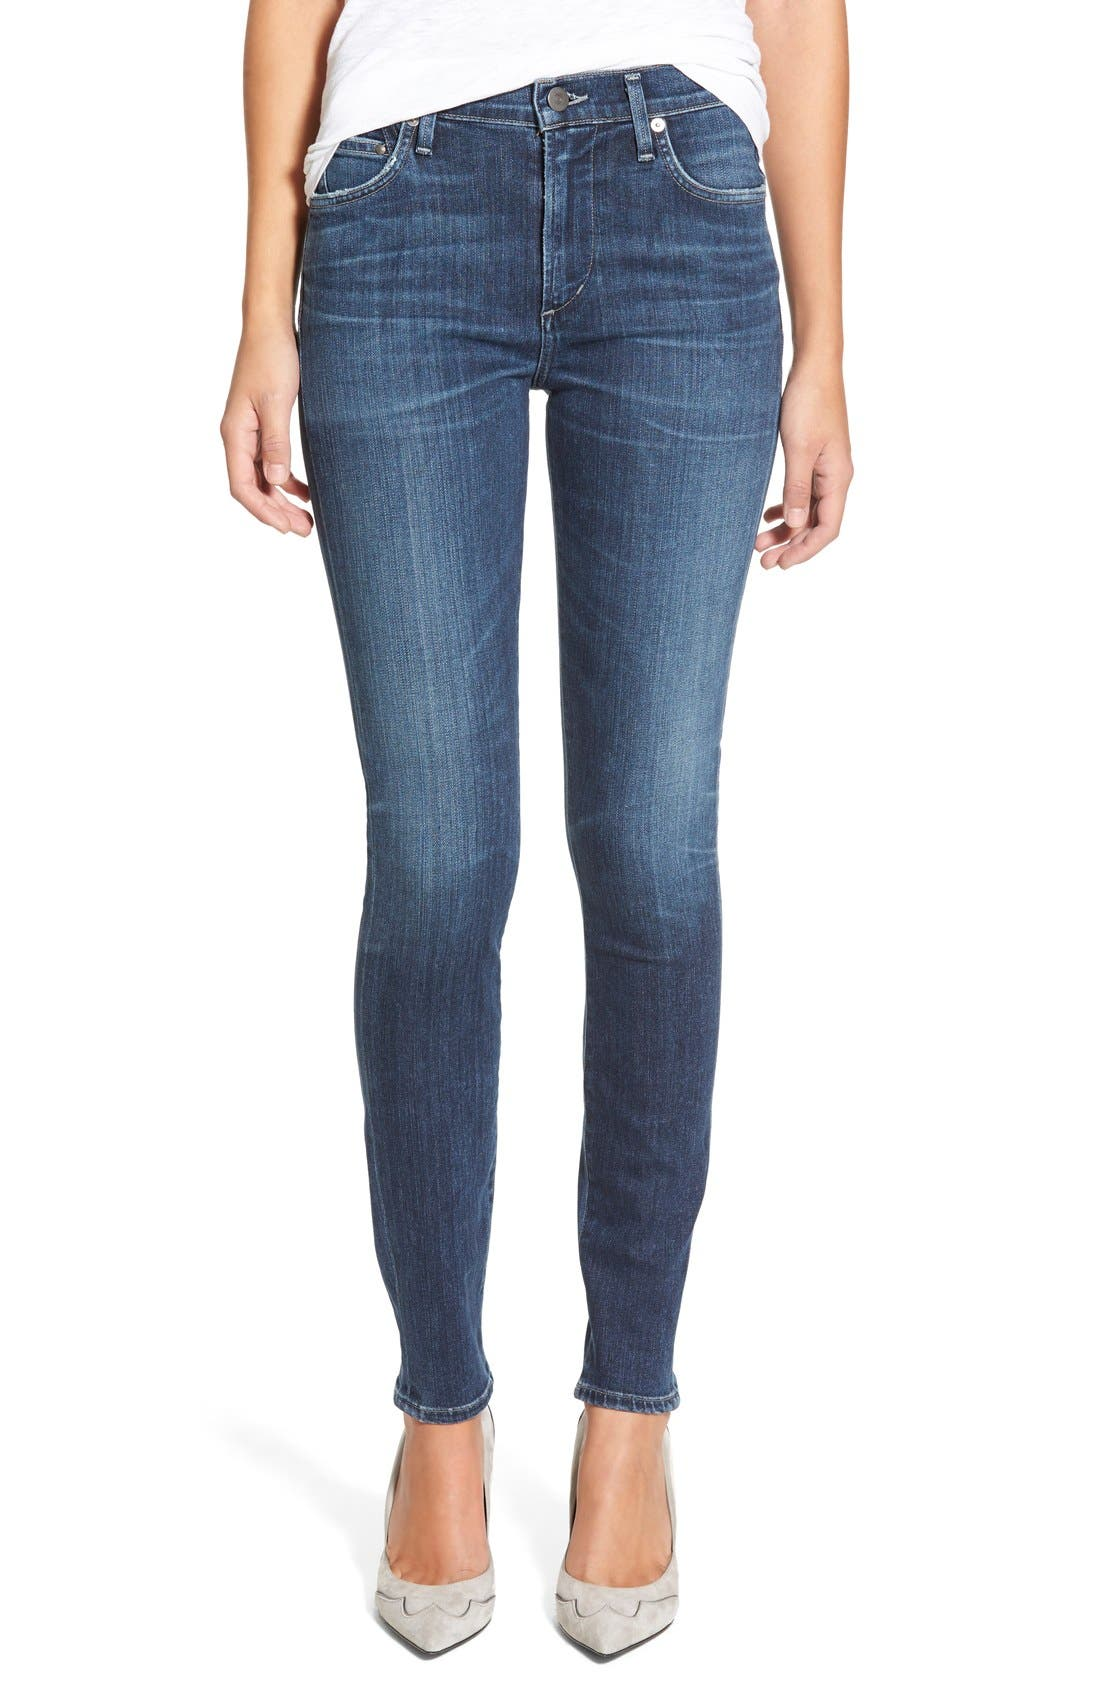 Rocket High Waist Skinny Jeans,                         Main,                         color, Albion